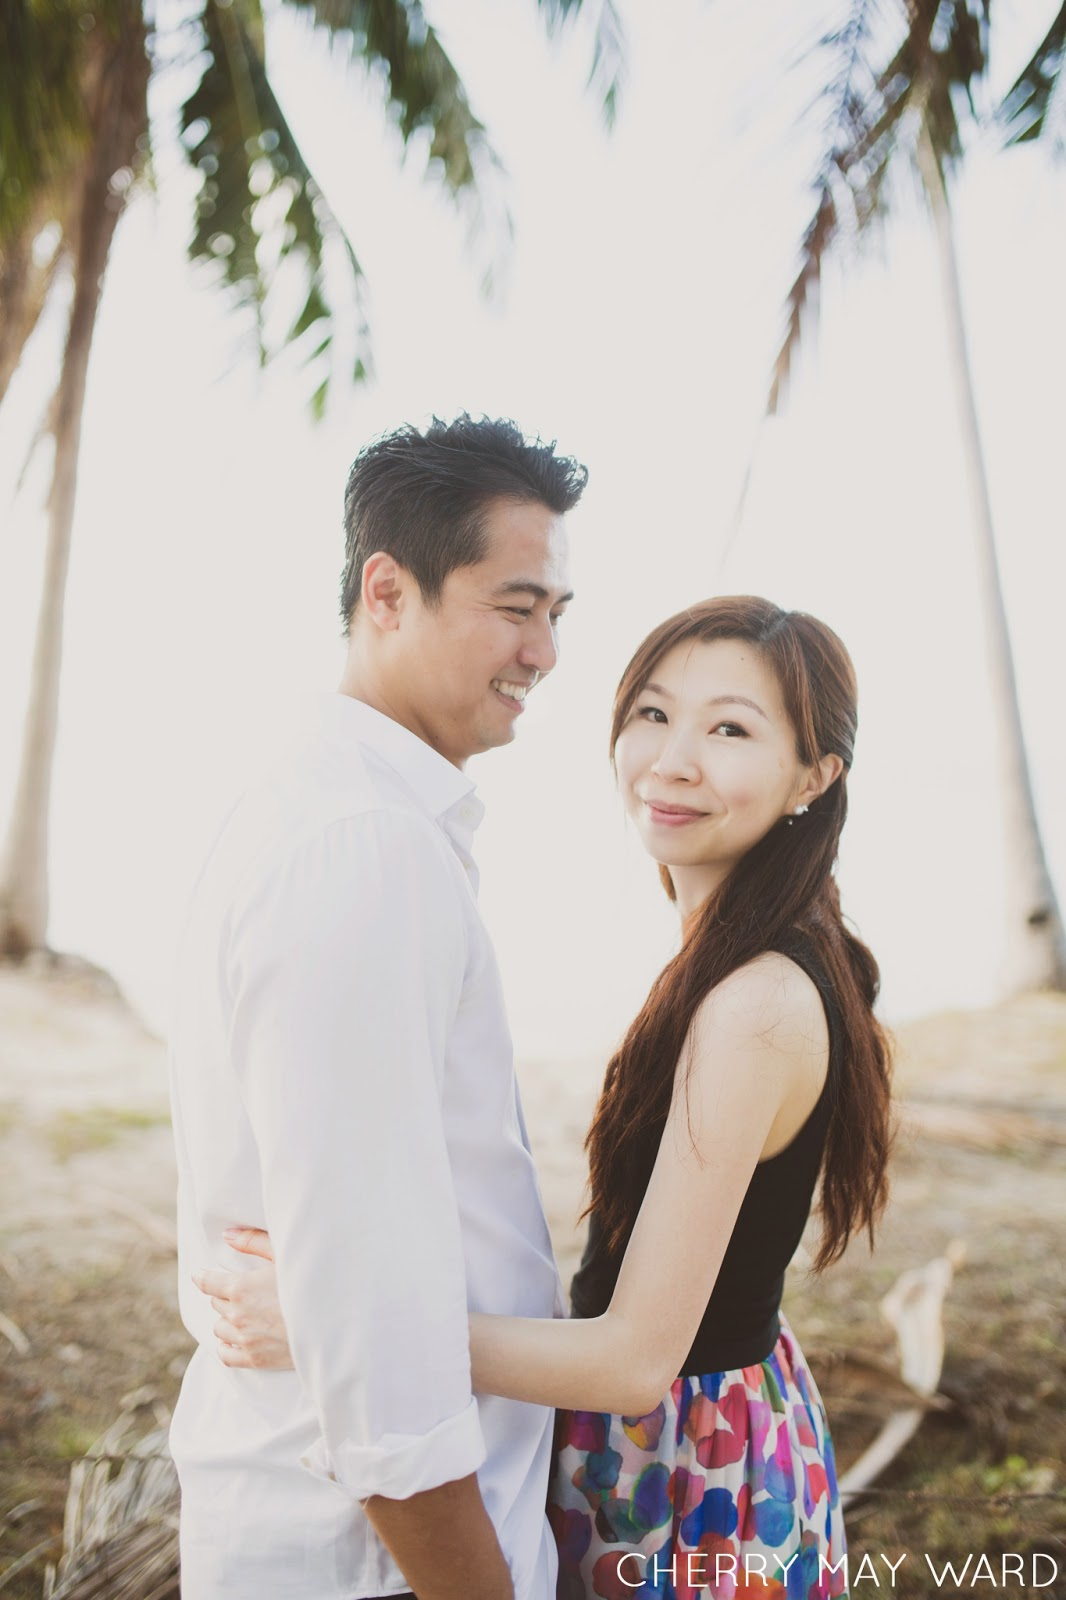 sunset photo session on Koh Samui, Ban Tai beach, palm trees and sunset, happy couple hugging, Thailand wedding photographer